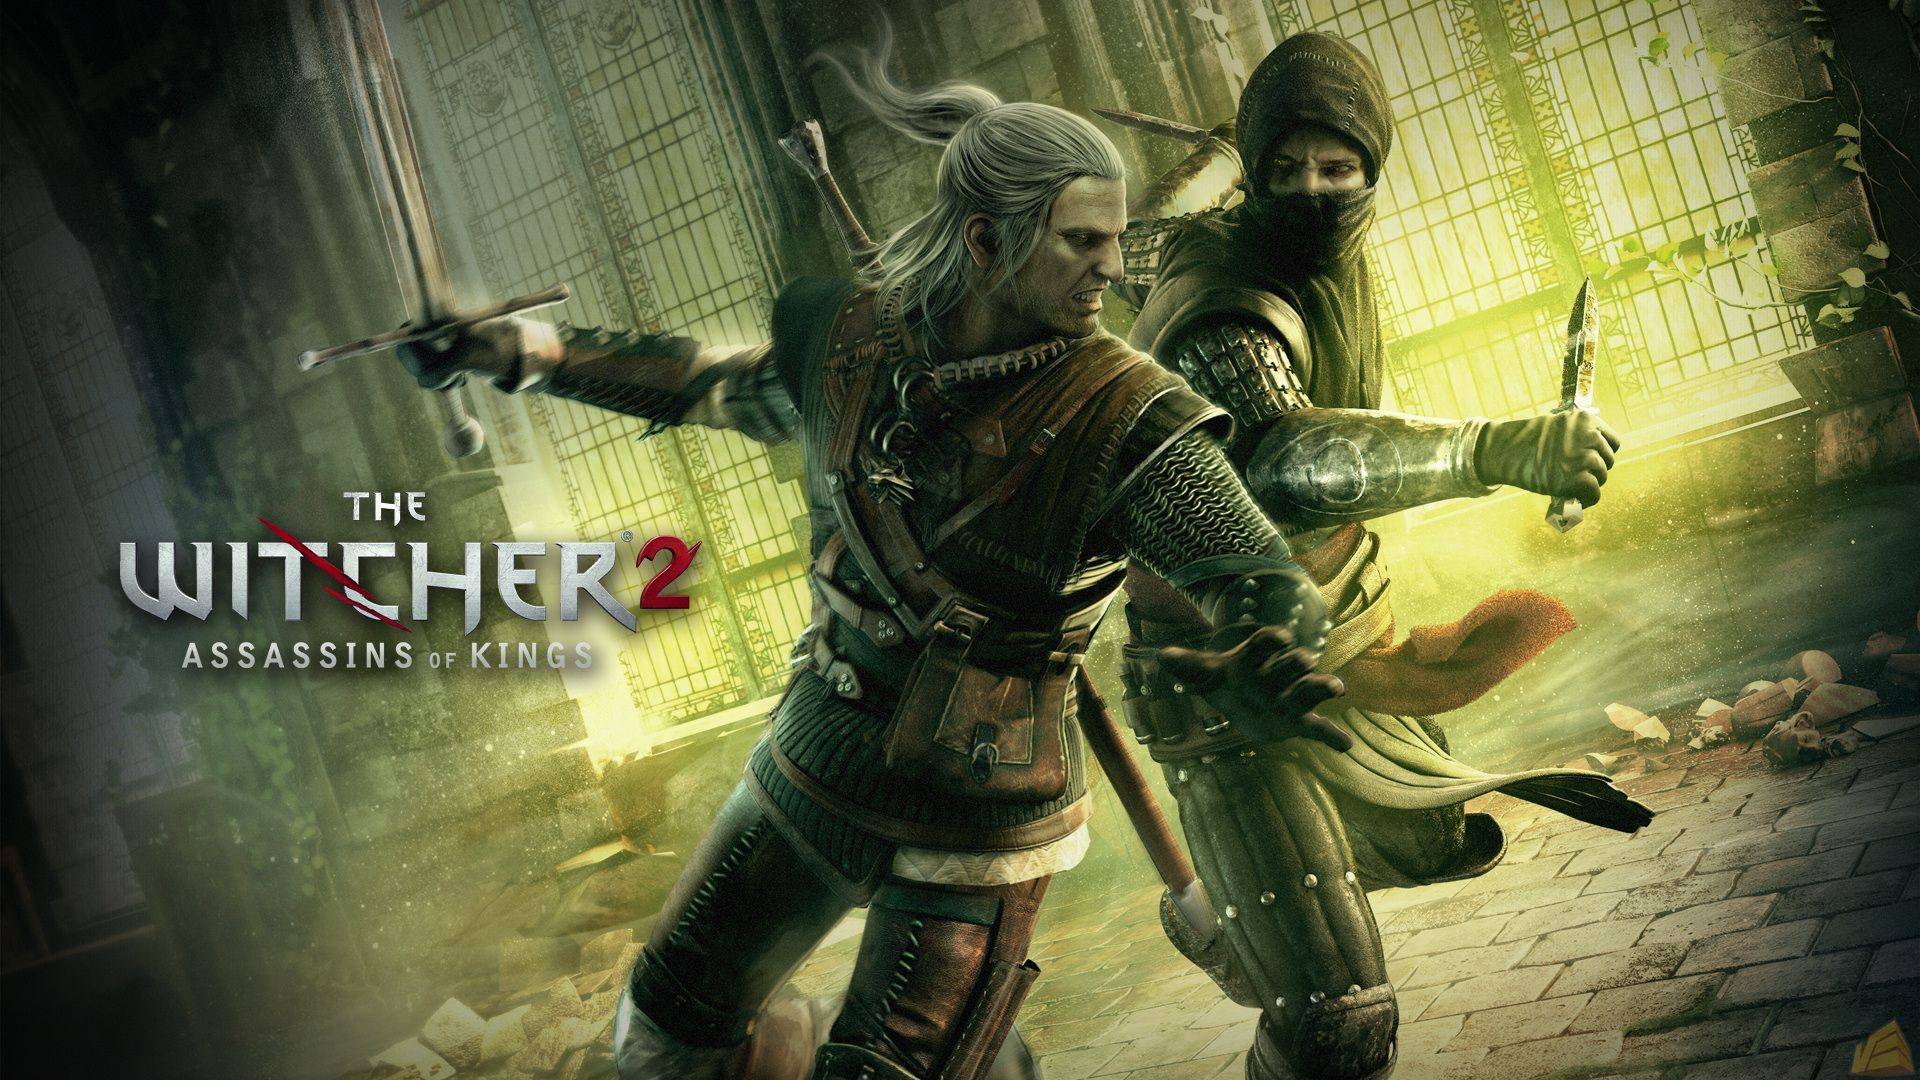 witcher 2 wallpapers in full 1080p hd